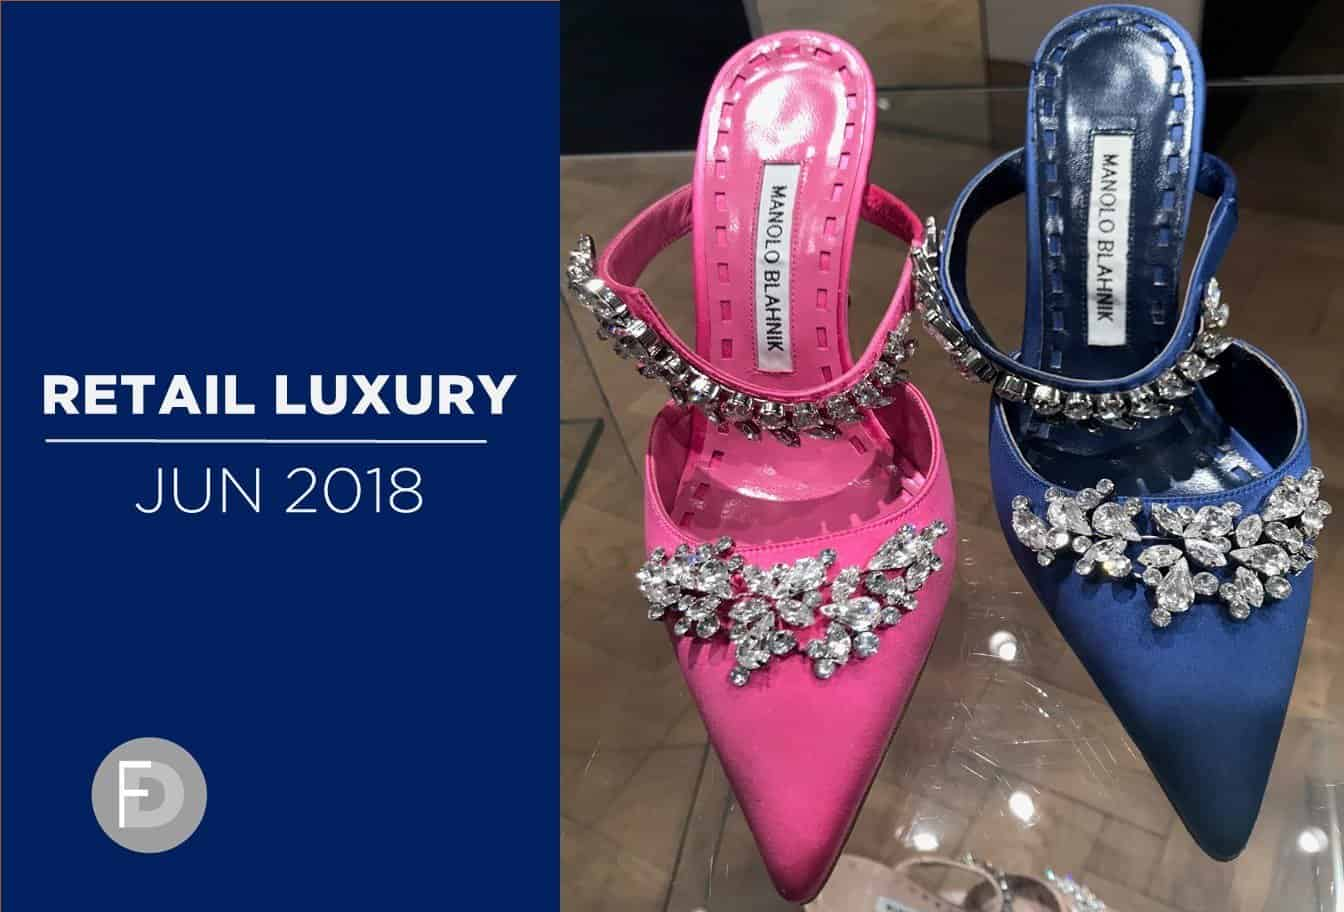 Retail Luxury June 2018